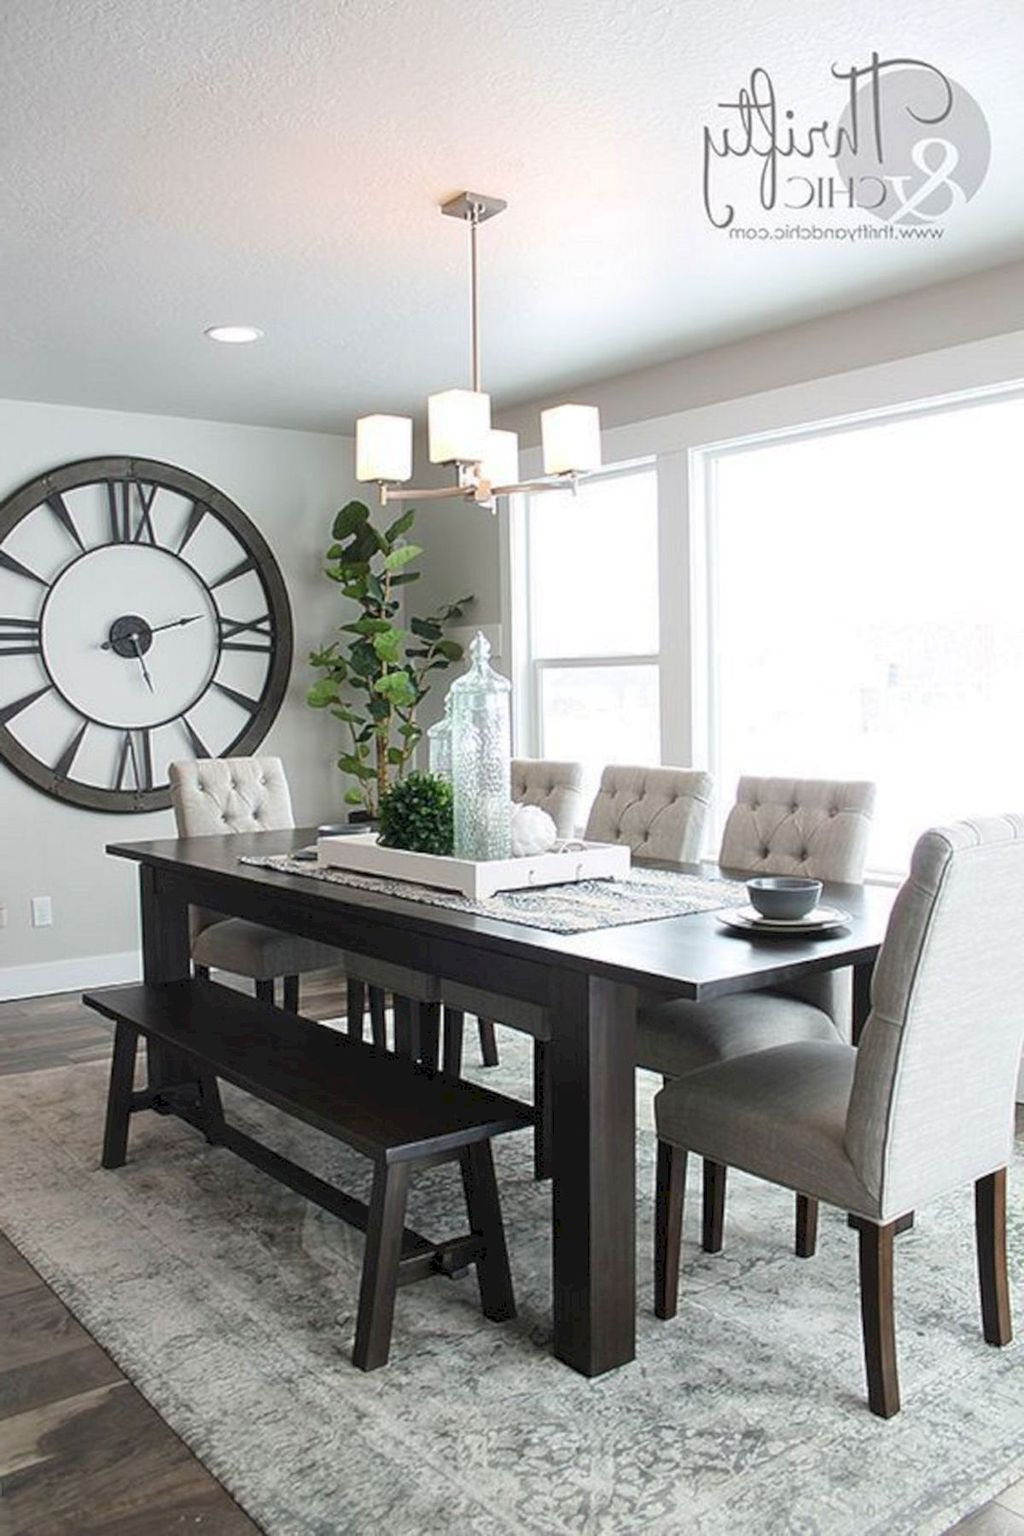 Table Dining Table Centrepiece Living Room Furniture Property In 2020 Dining Room Table Decor Dining Room Small Dinning Room Decor